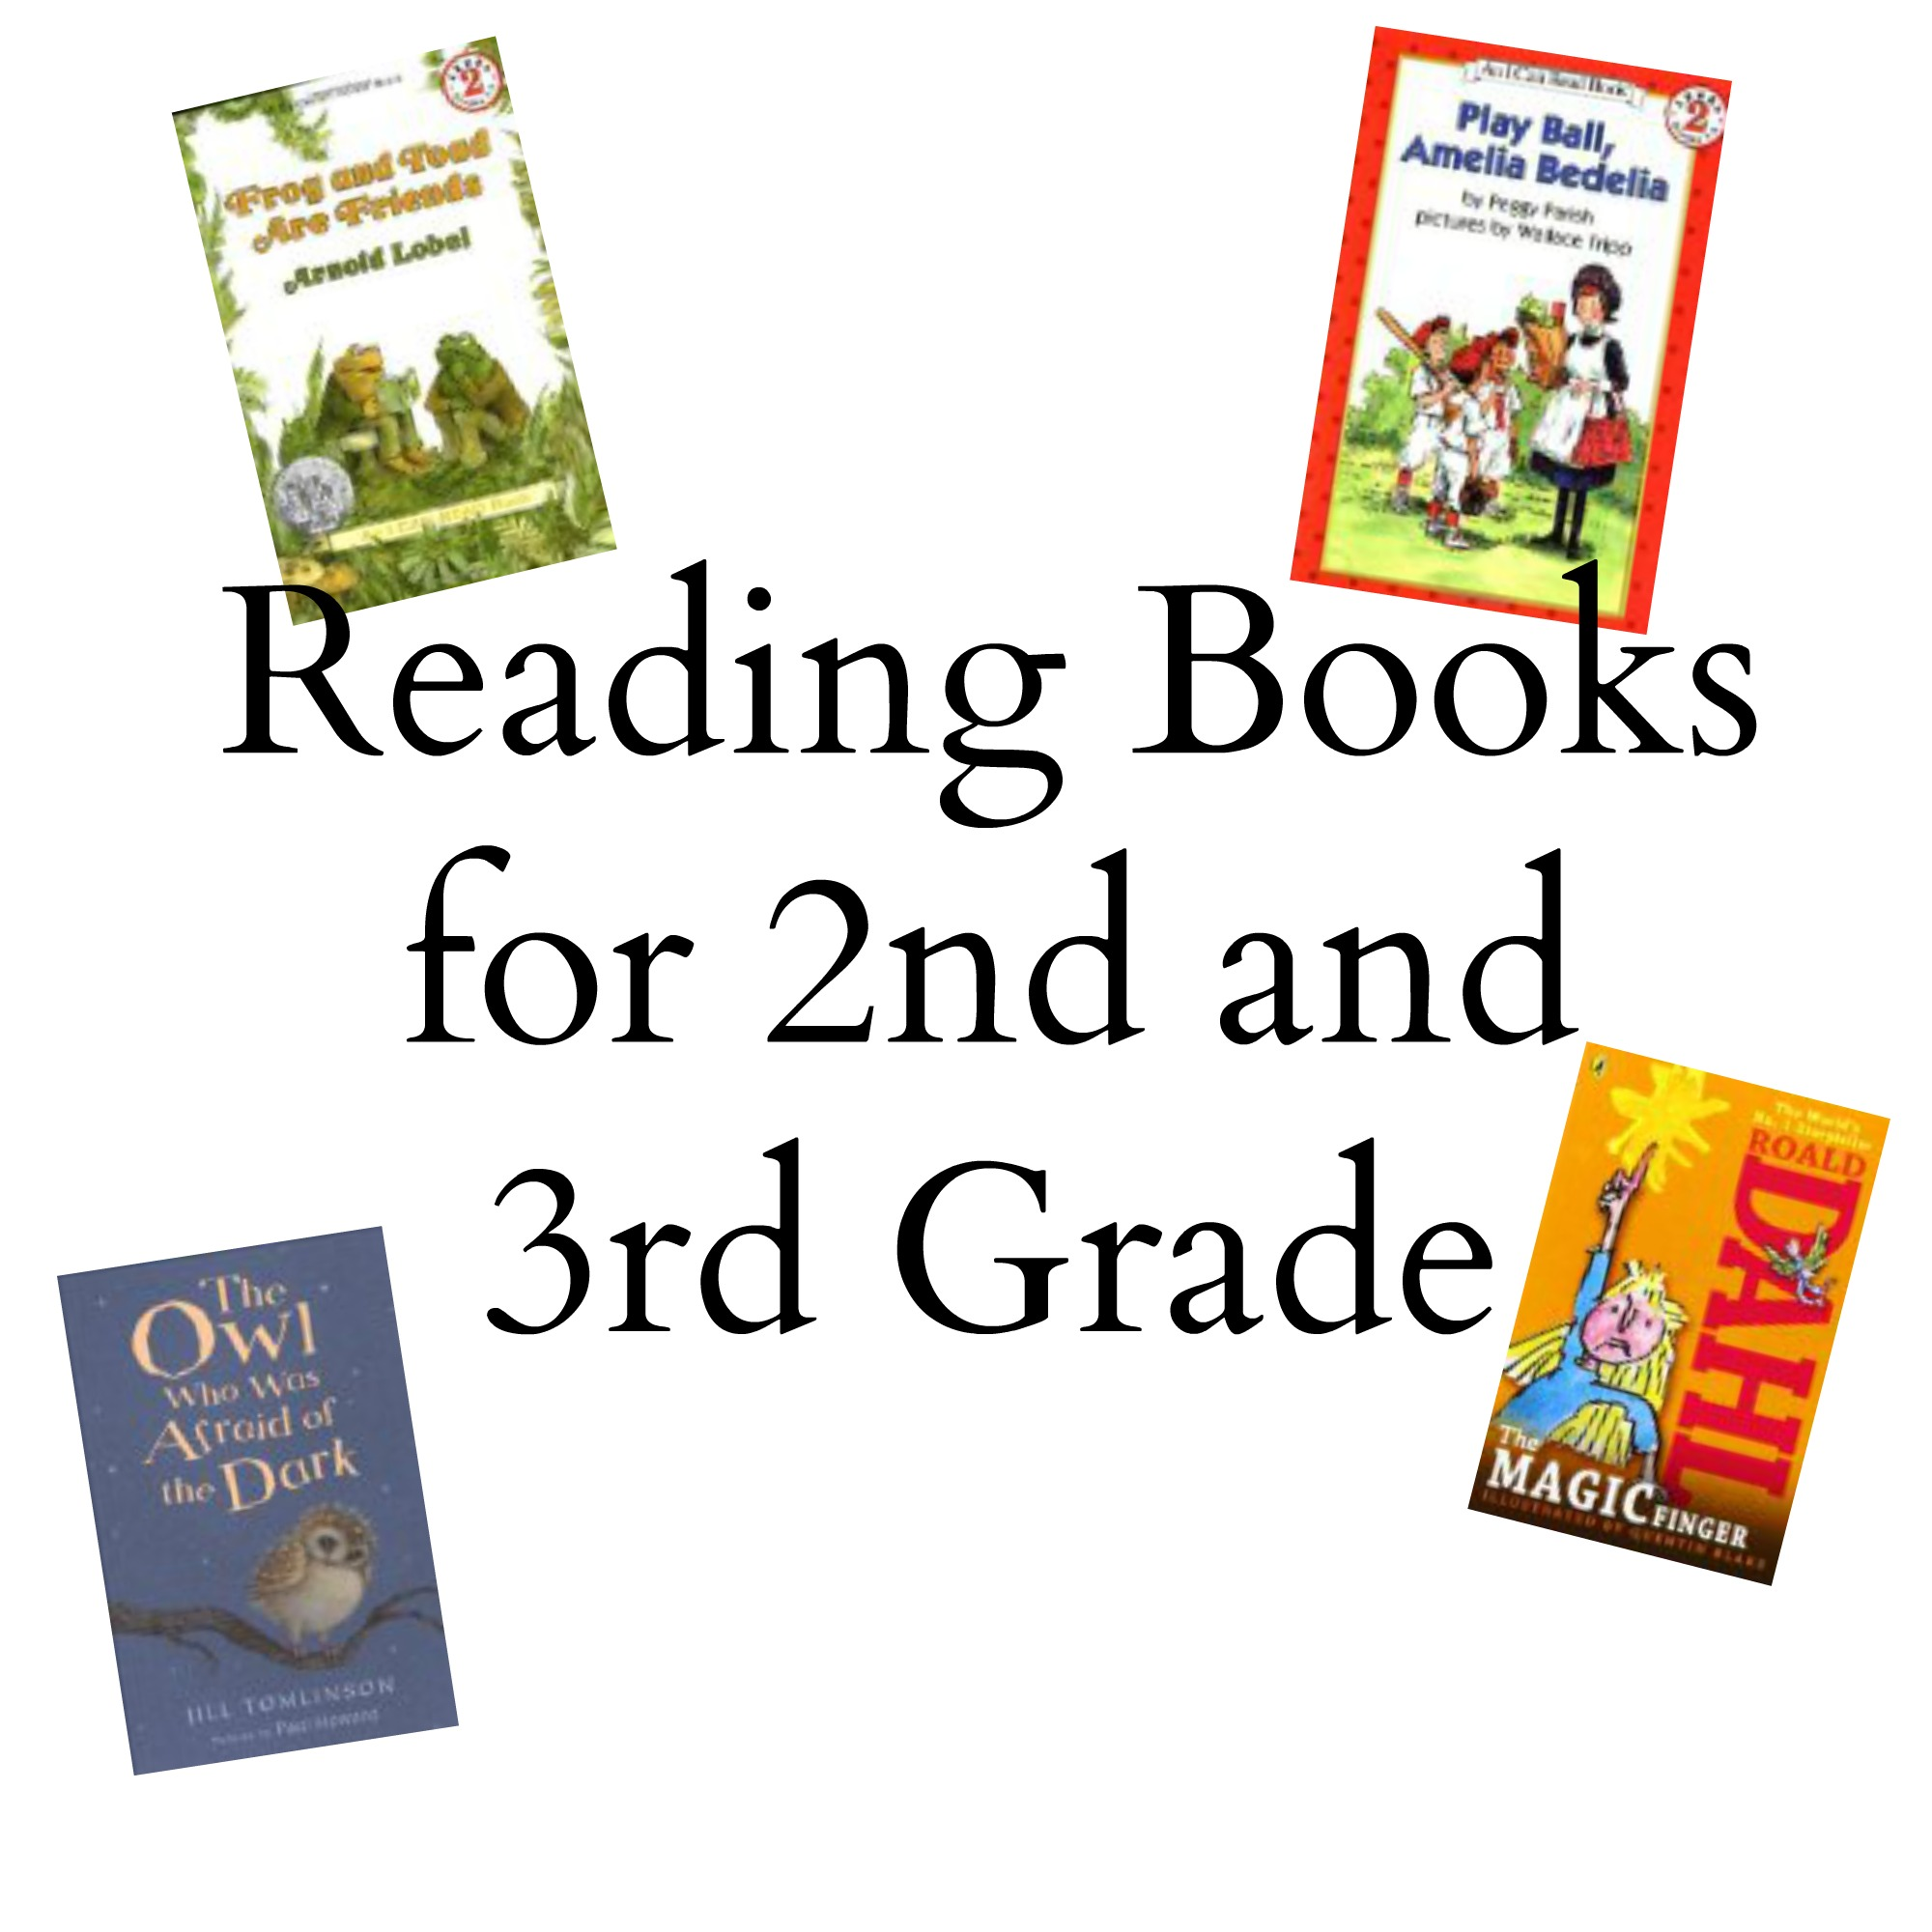 Worksheet Third Grade Level Reading free dick and jane reading books eclectic homeschooling for 2nd 3rd grade